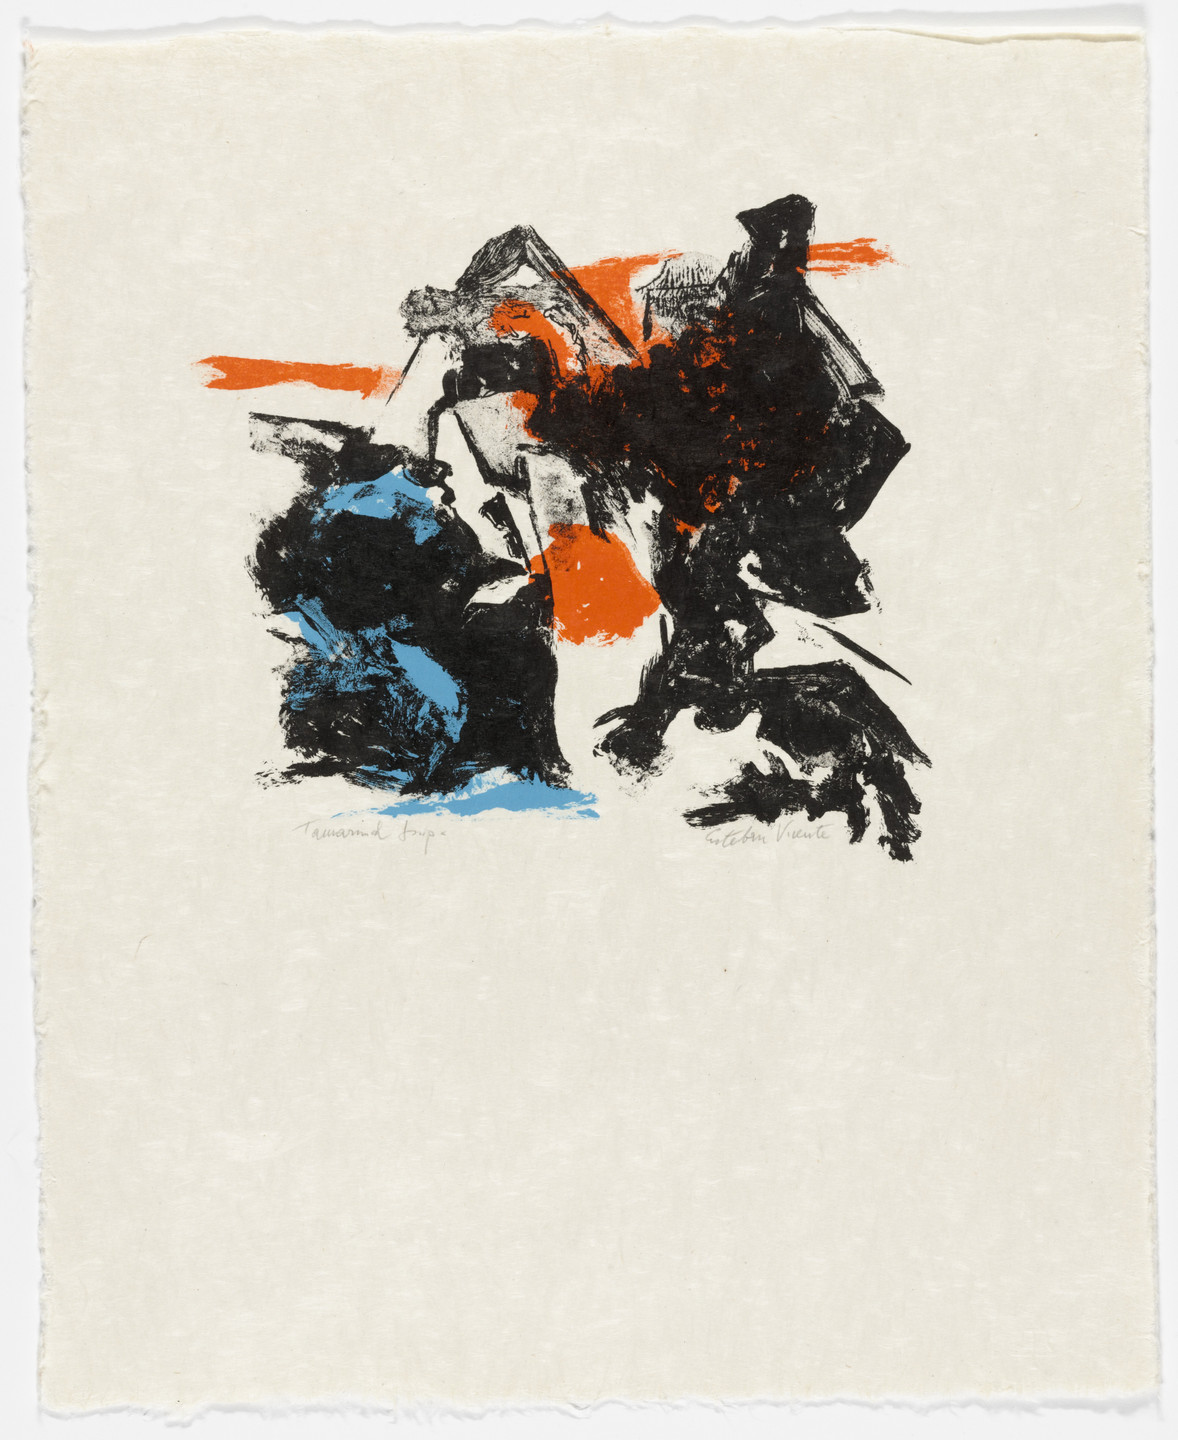 Esteban Vicente. Untitled from the portfolio FIVE LITHOGRAPHS. (September 12-17, 1962)